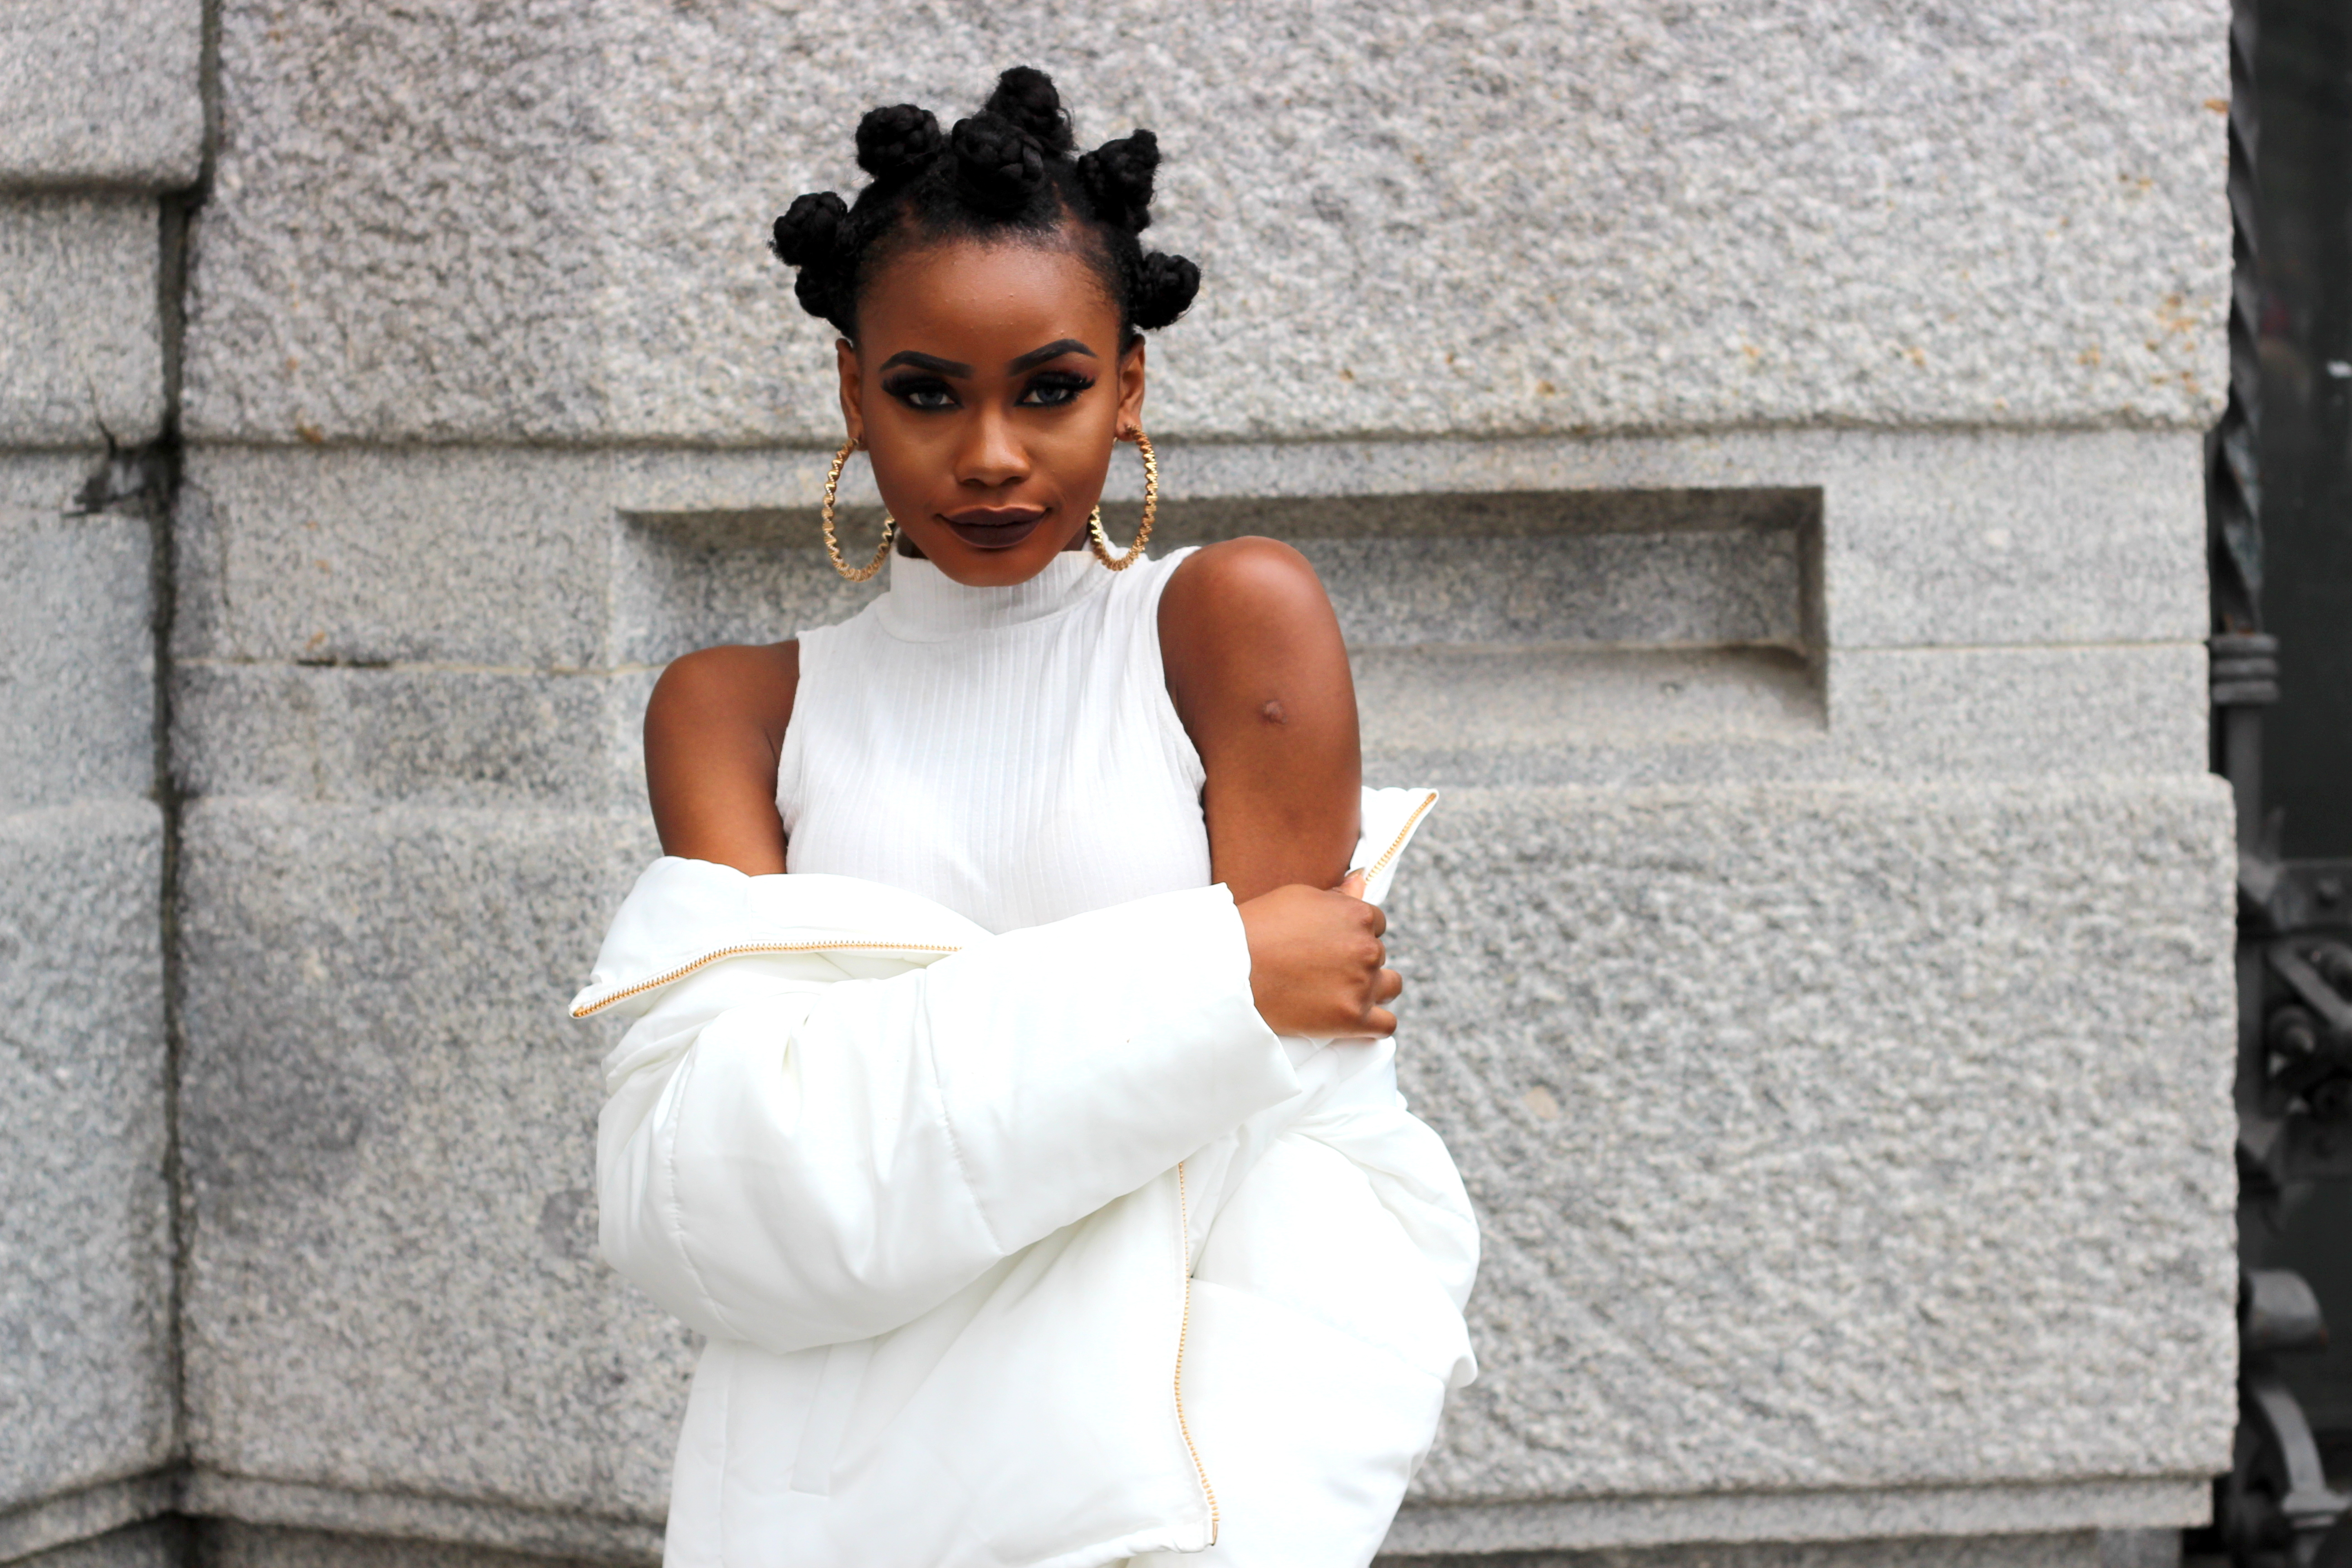 Billykiss Azeez. Your Favourite Muse. Fashion Irish Blogger. Street-style. Puffy Quilted Zara Jacket. H&M Seude Camal Skirt. EGO Nude Thigh High Boots. African Style Blogger. Bantu Knots. High Fashion. A/W 16.